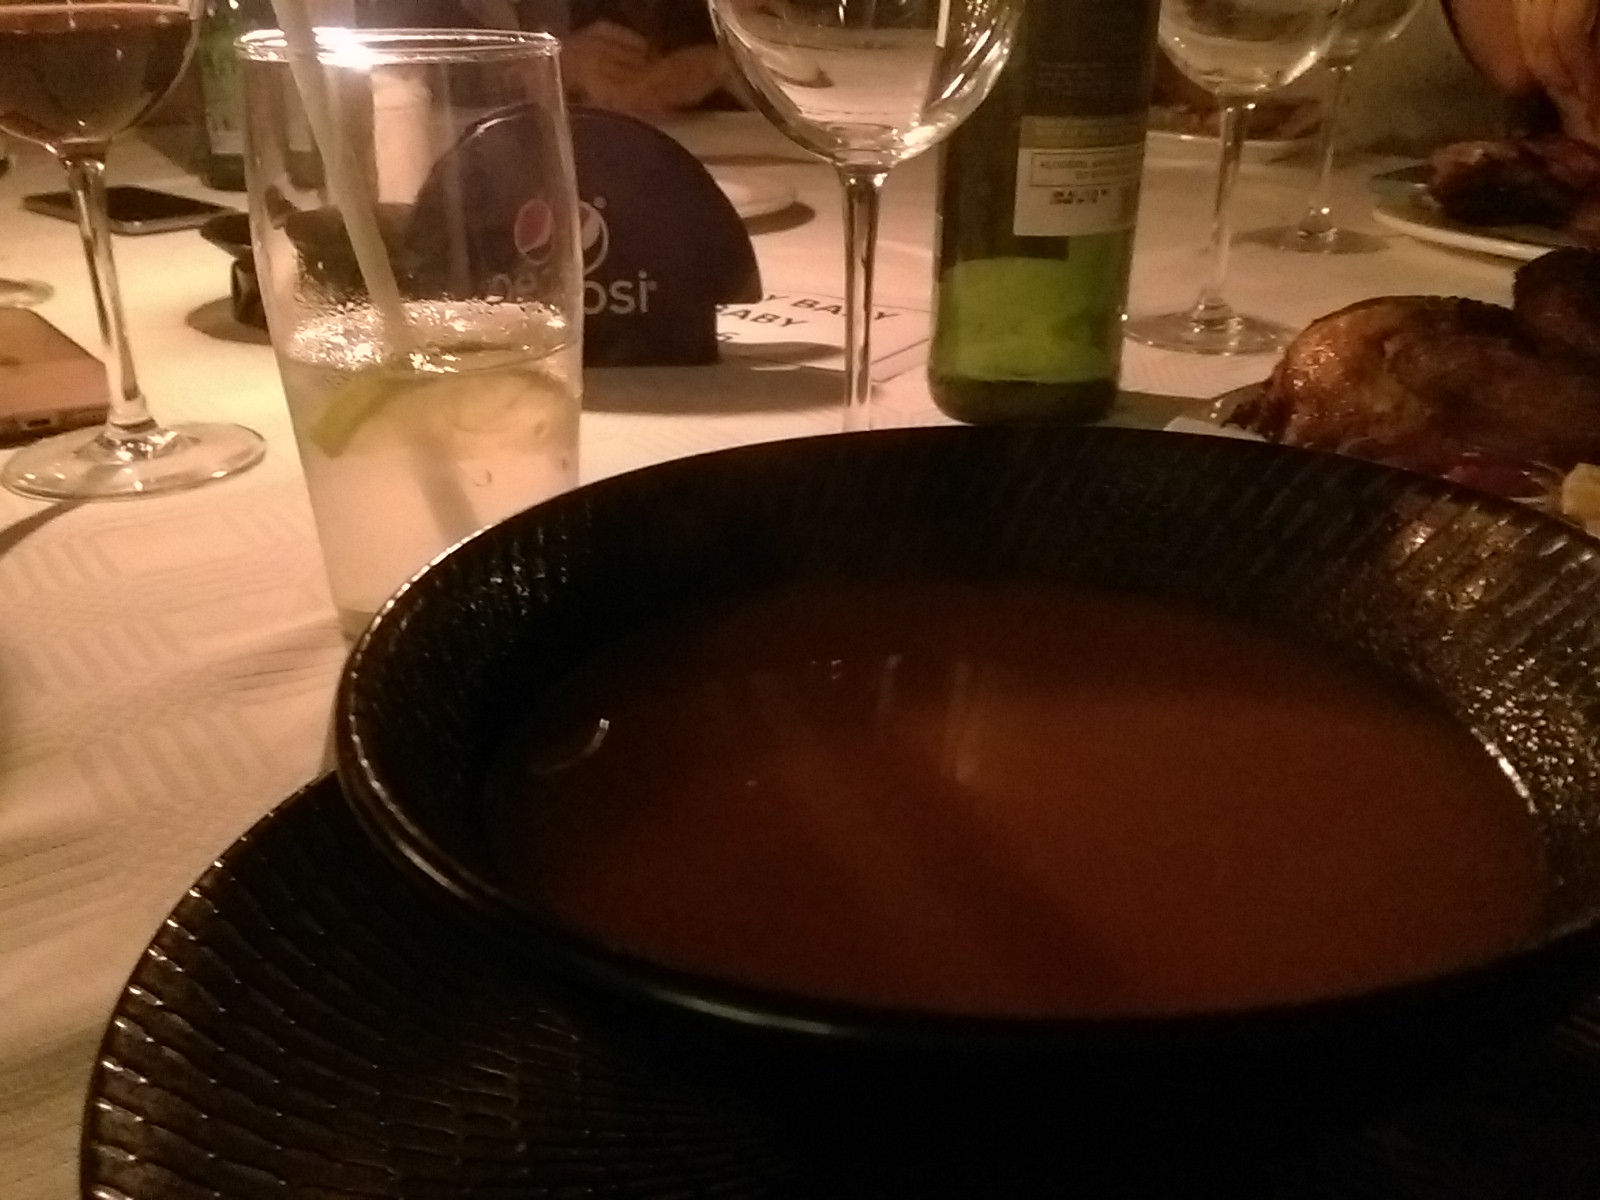 A dark bowl with red soup on a table with wine glasses in the background